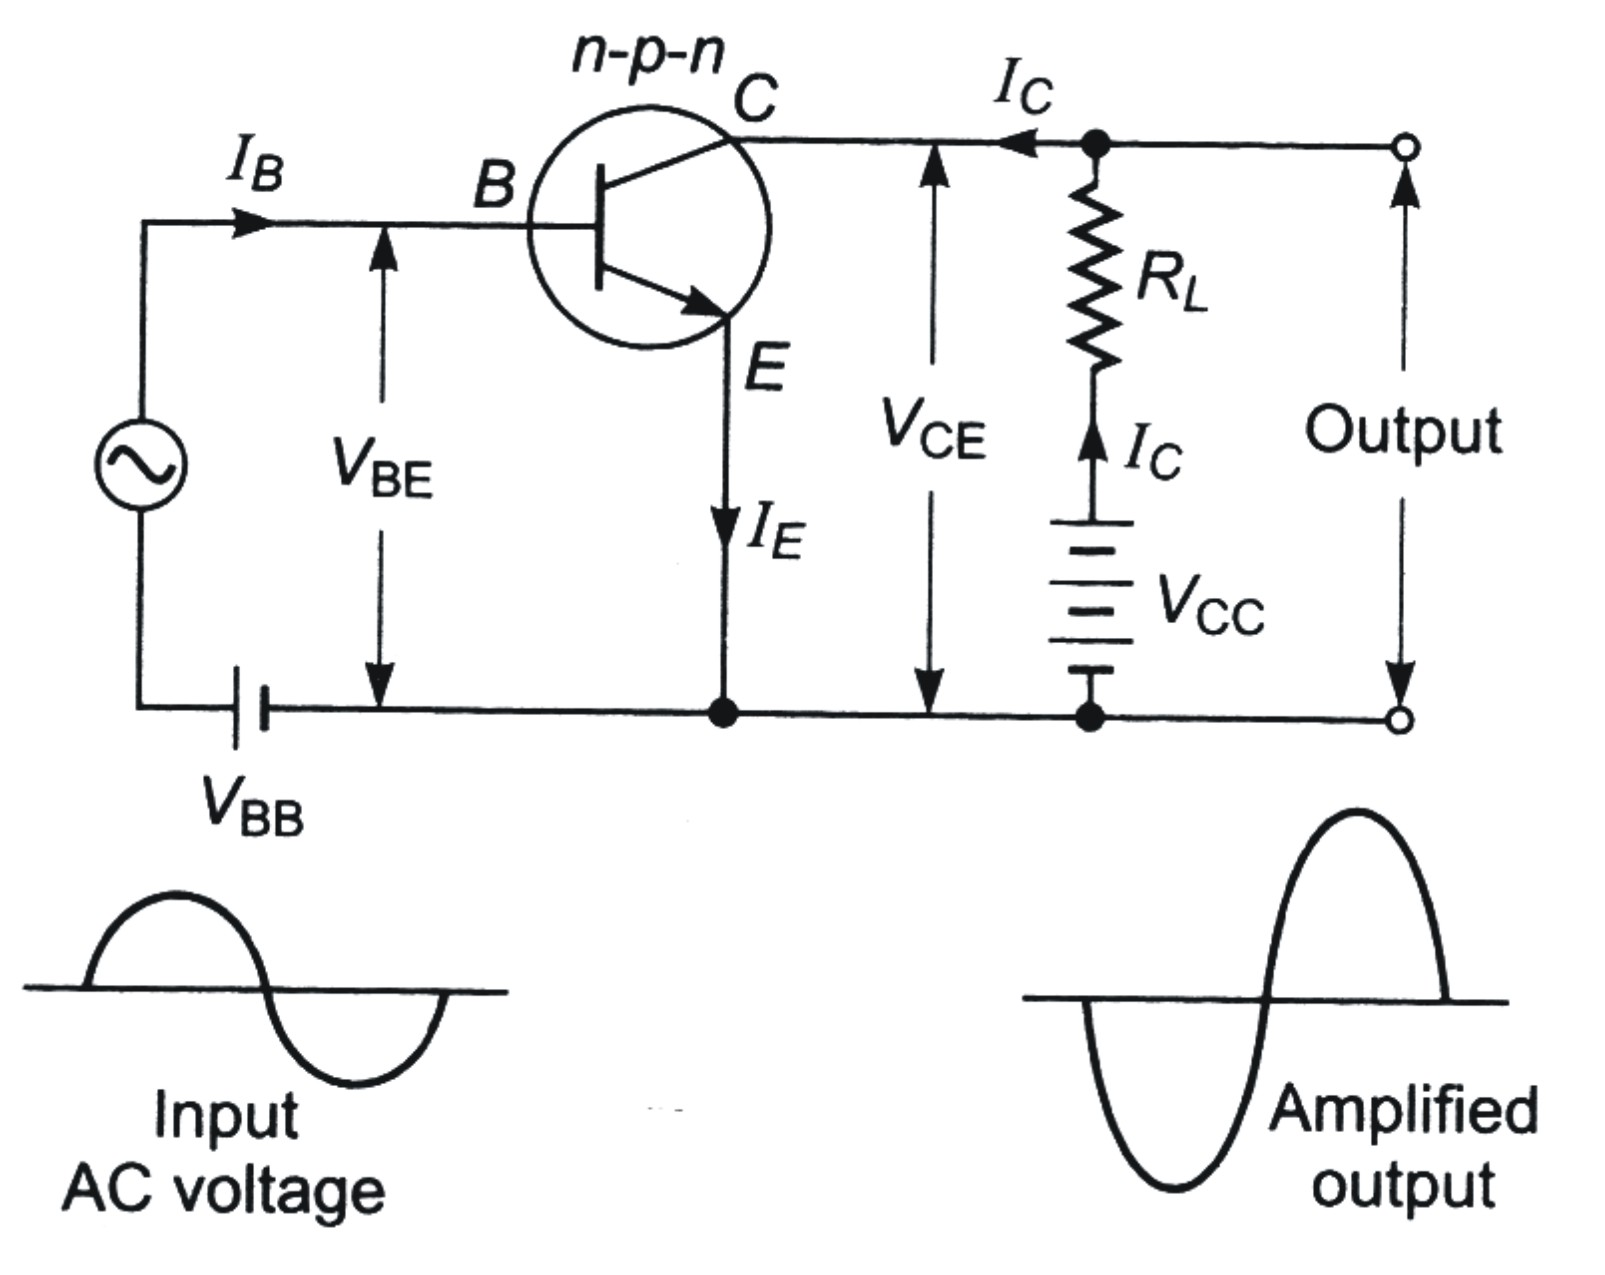 Voltage Amplifier Transistor Circuit Diagram Provided Experience 40w Schematic Previous Year S Questions Dronstudy Com Rh High Power